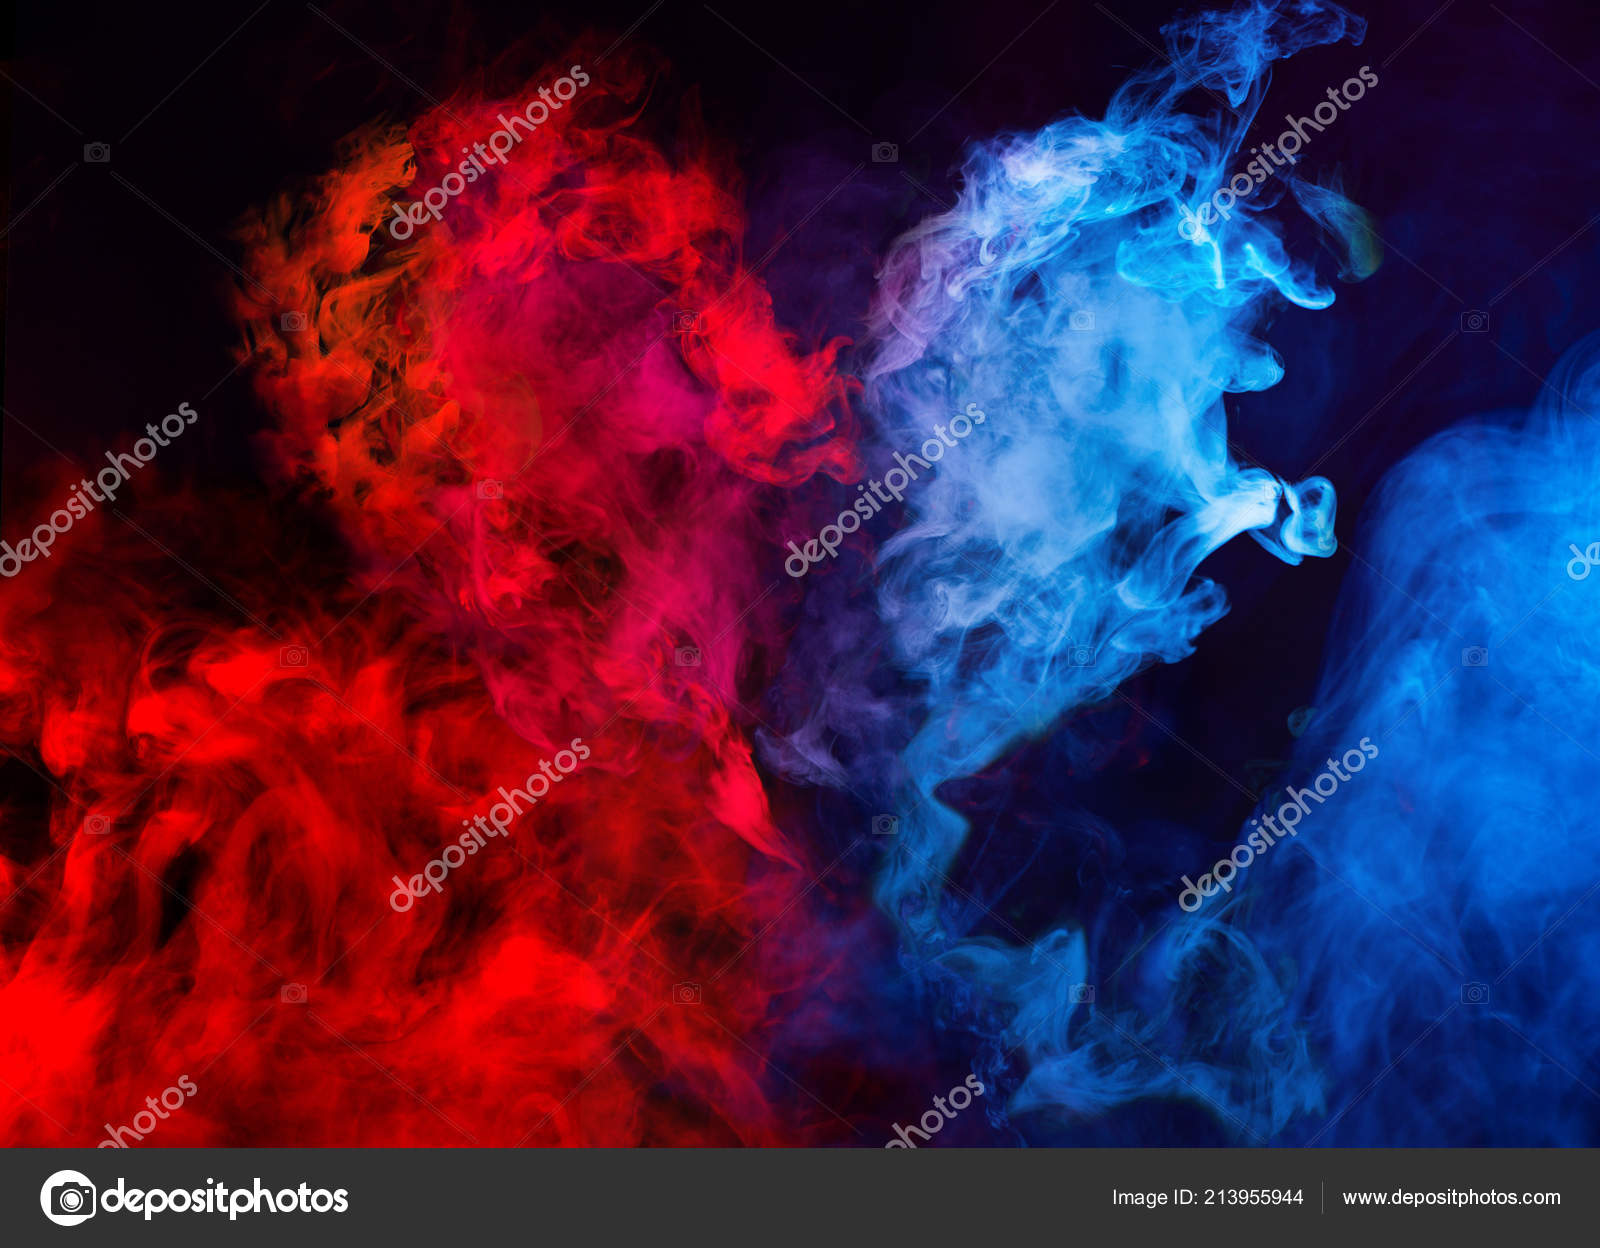 Abstract Shapes Red Blue Smoke Heart Shape Dark Background